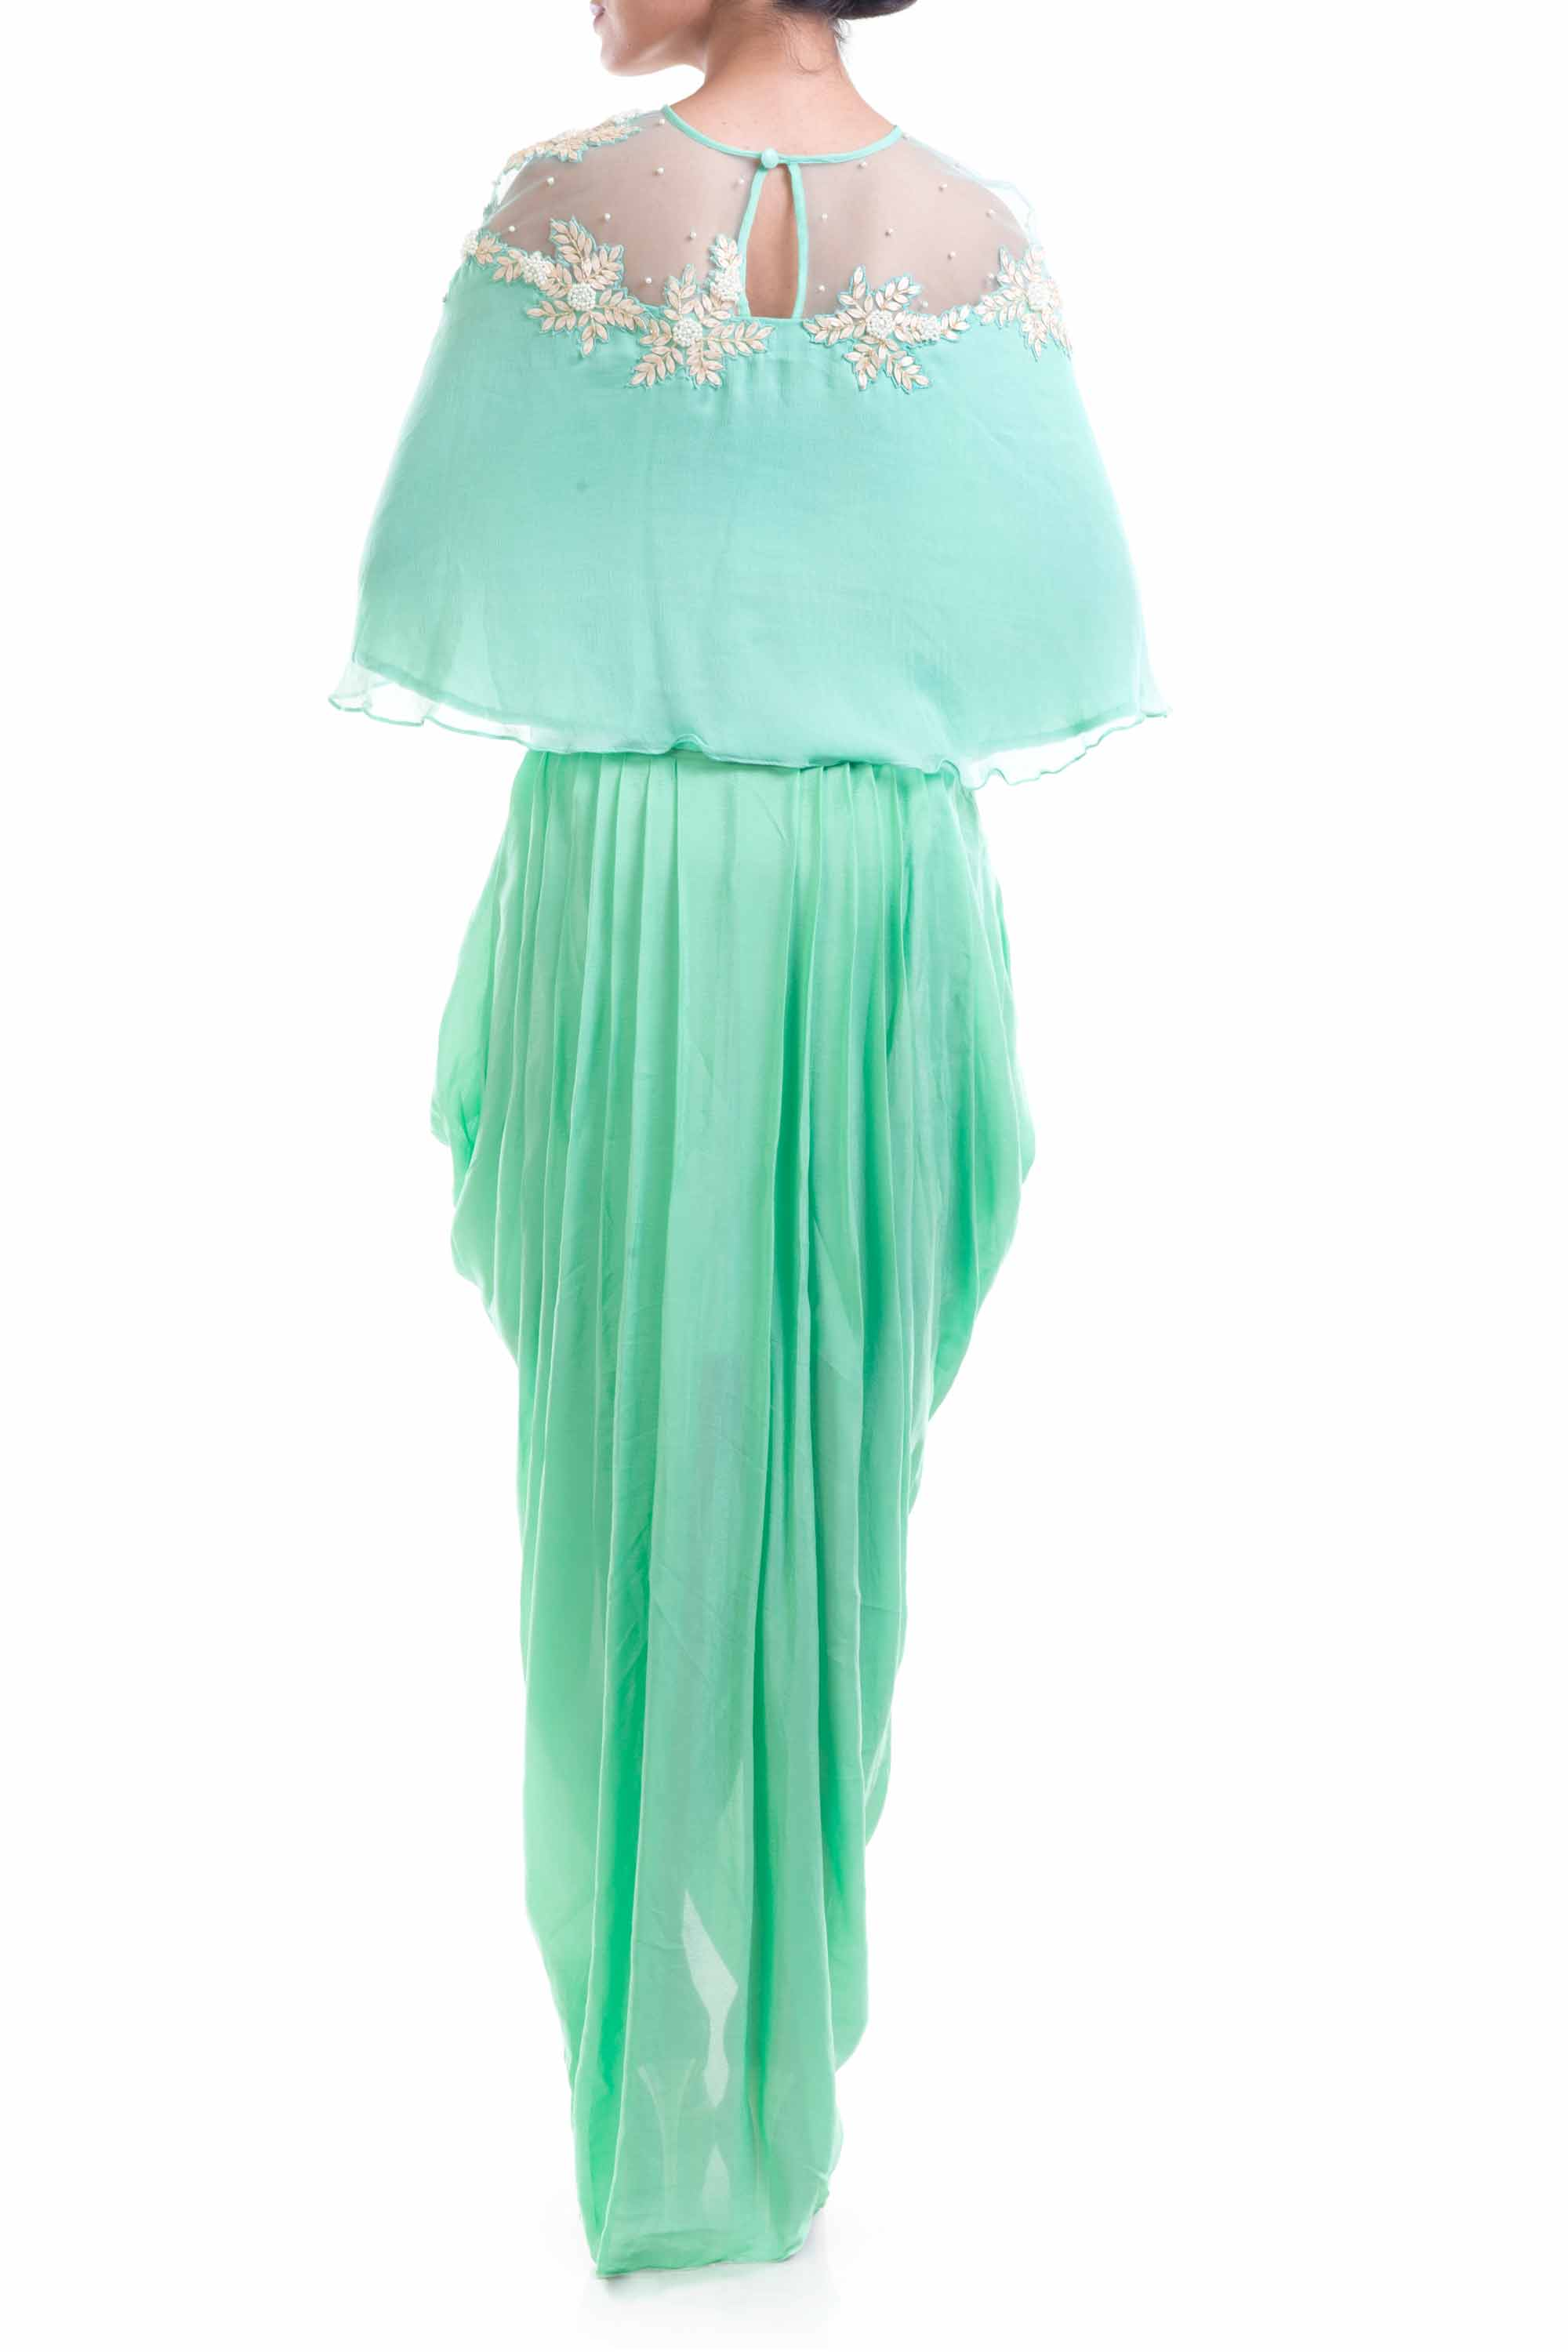 Aqua Blue Chiffon Cape With Wrap Dhoti Skirt Back